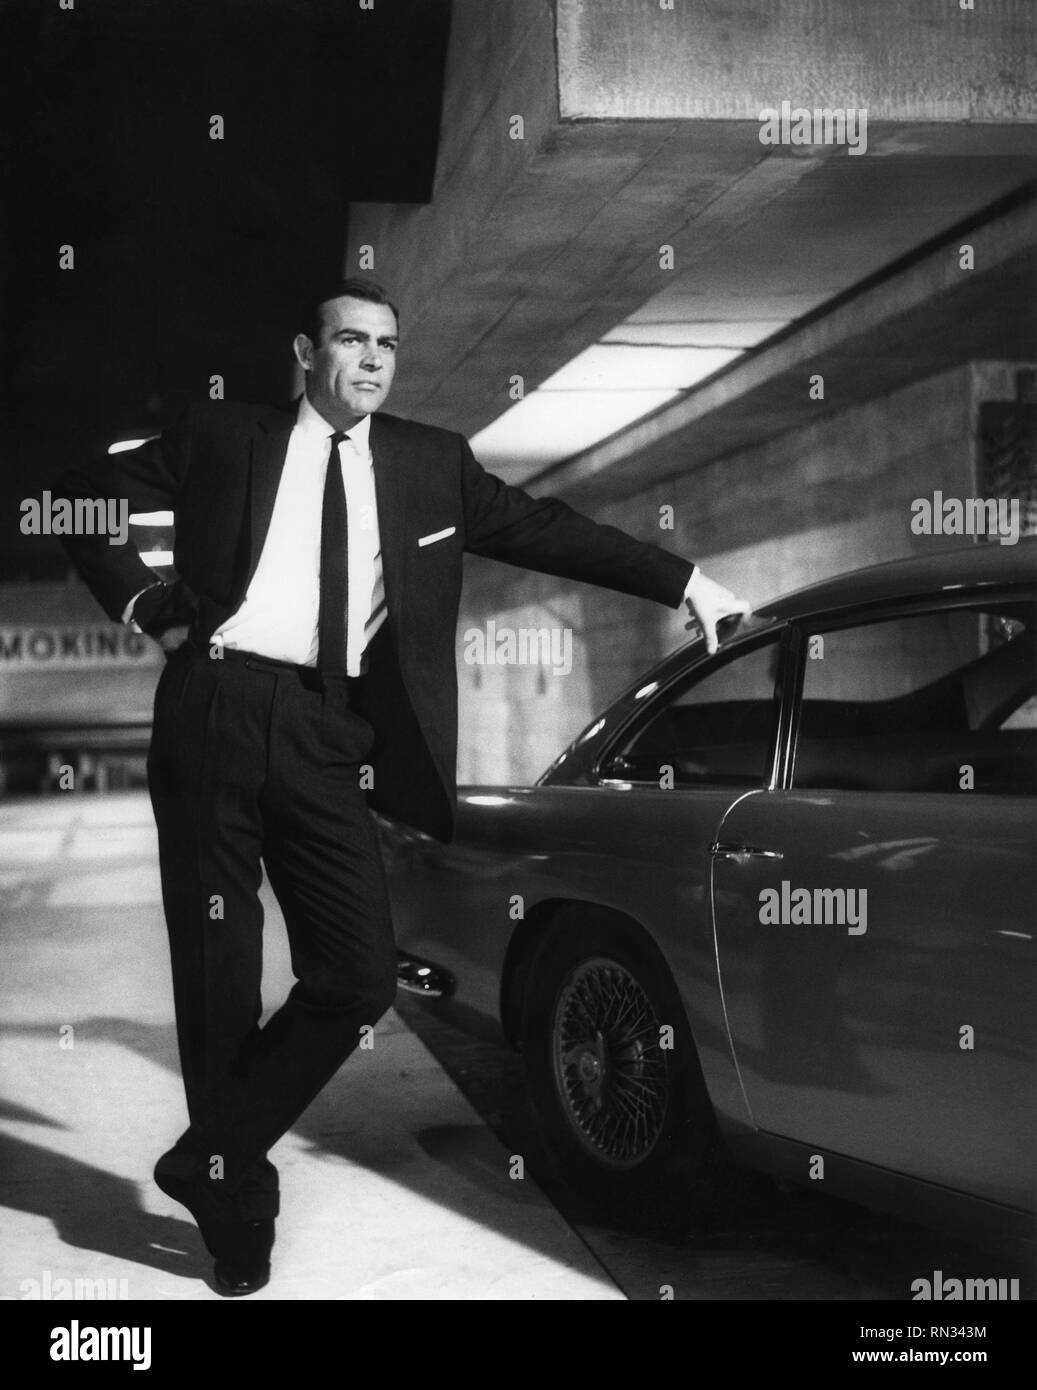 Sean Connery Goldfinger 1964 Aston Martin Db5 James Bond Photo By Arthur Evans Eon Productions United Artists Stock Photo Alamy